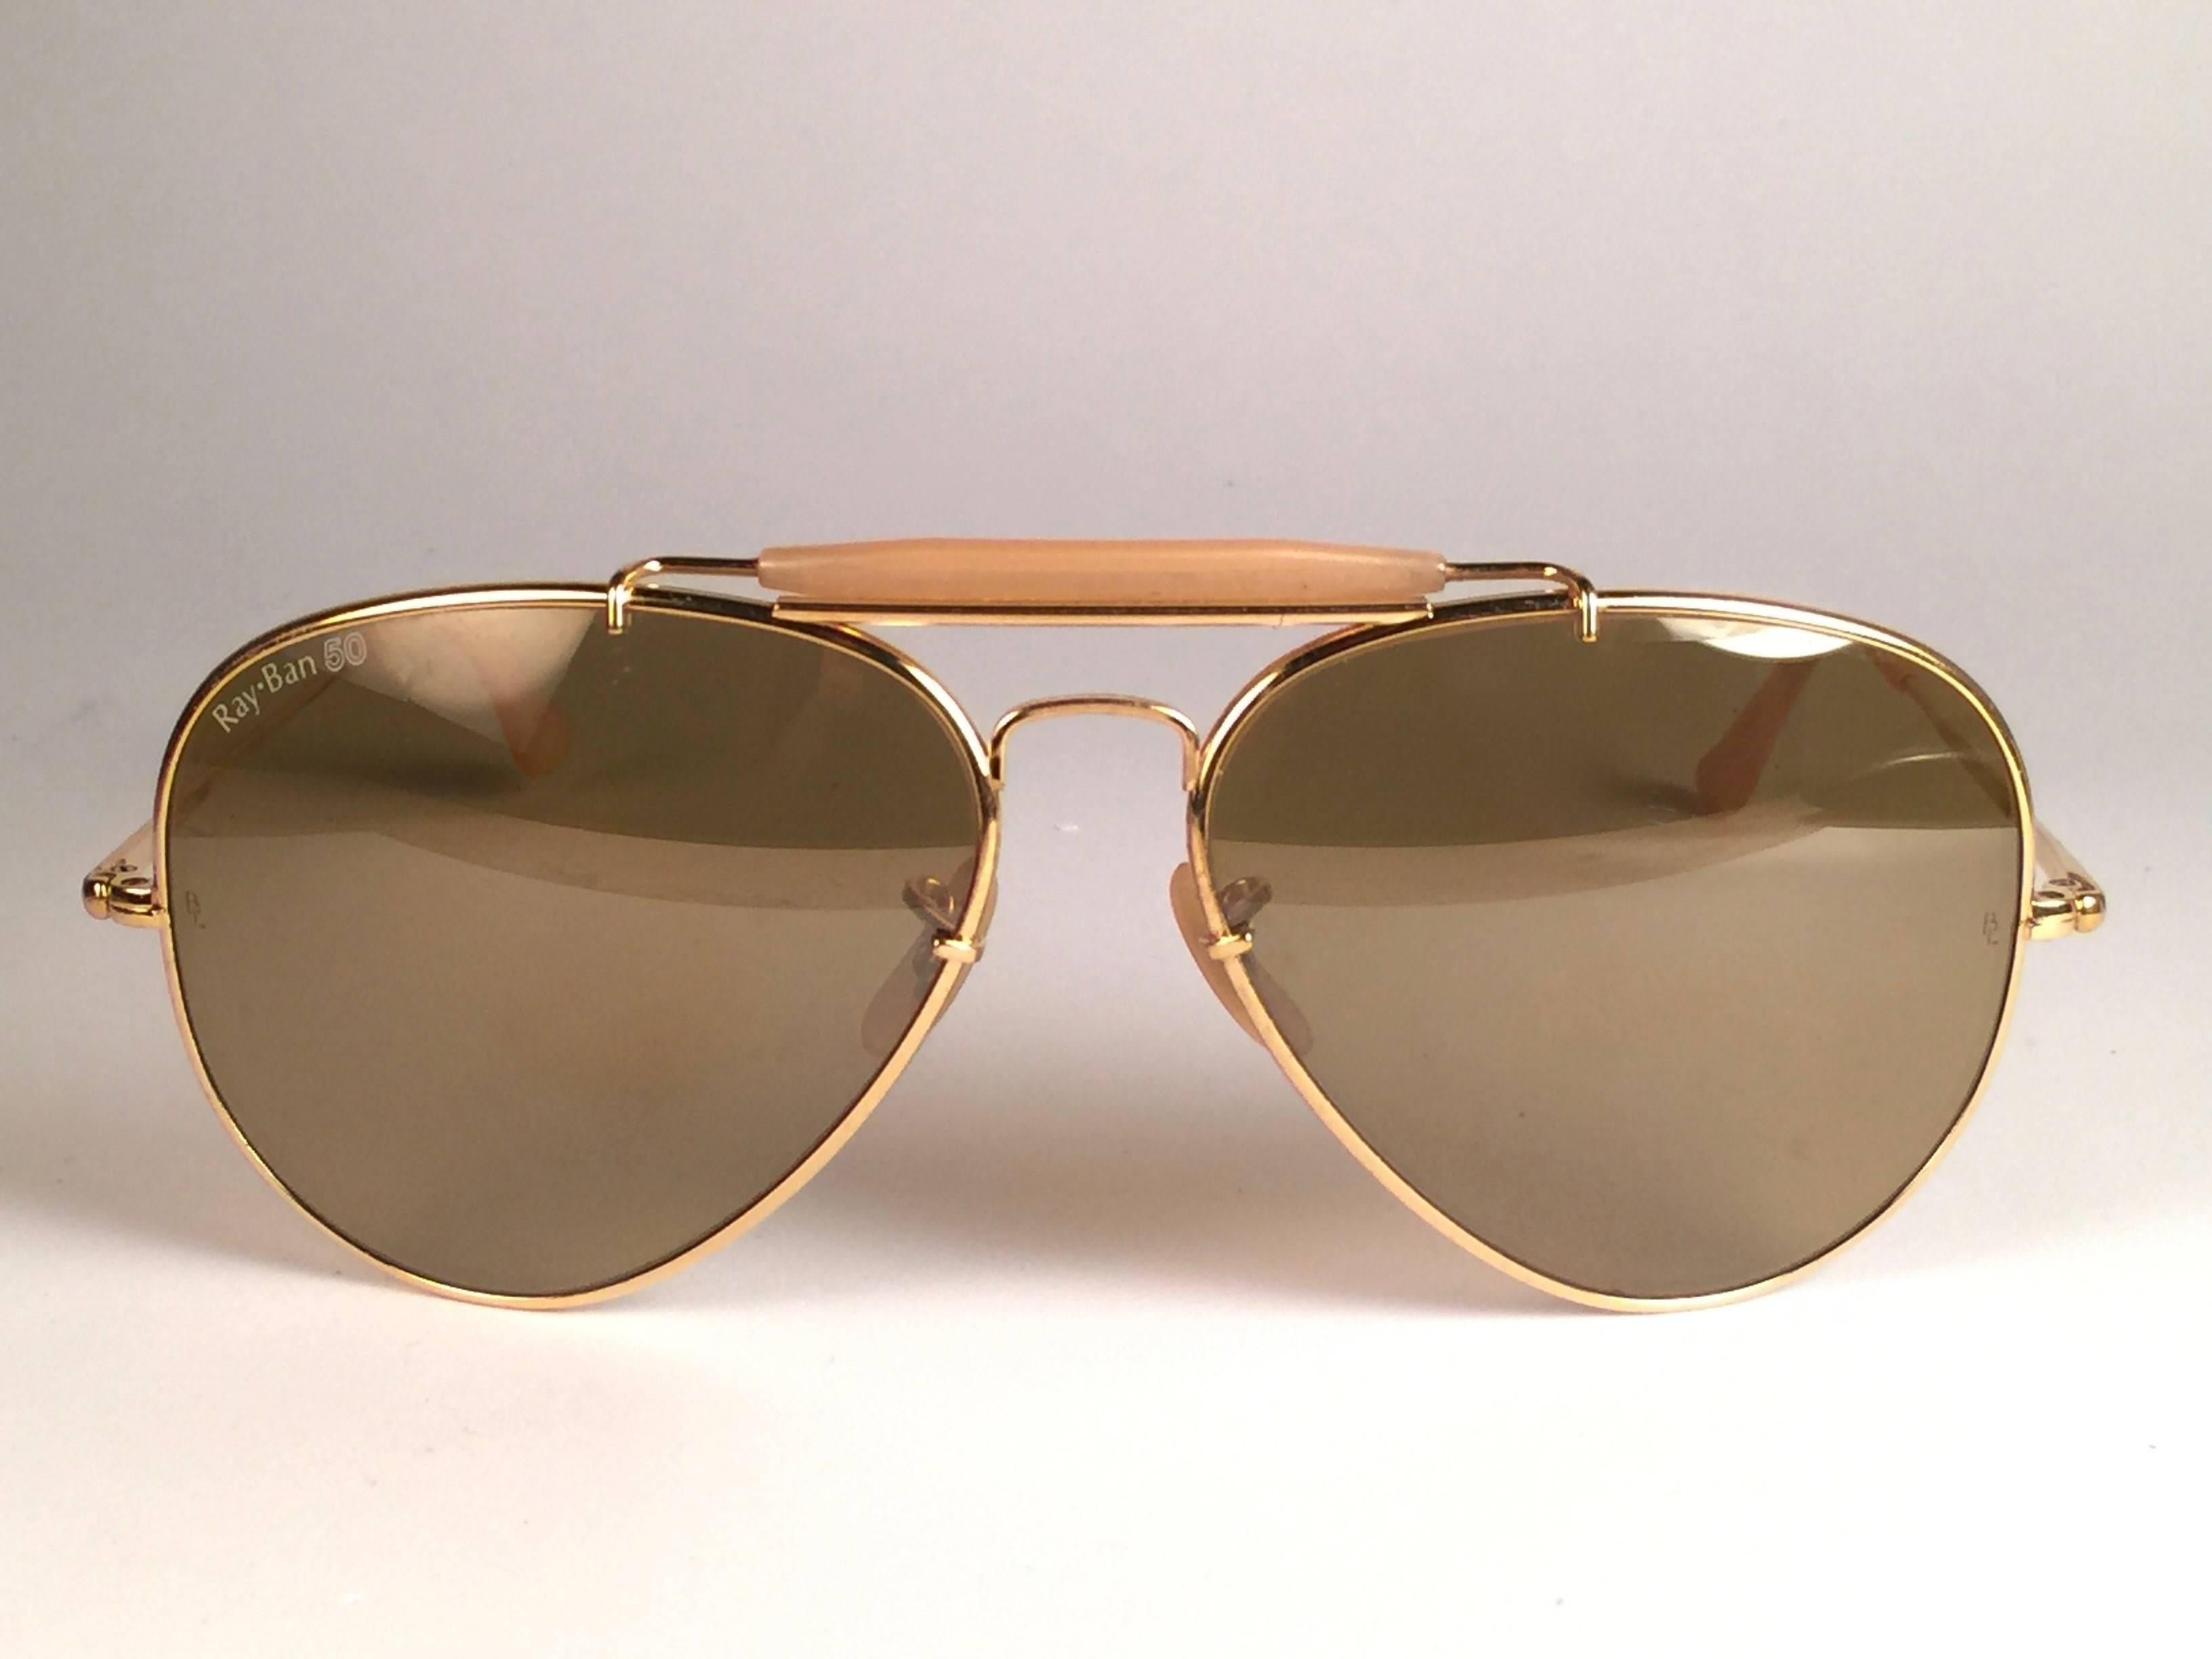 d1f9a152277 Vintage Ray Ban The General 50 Collectors Item George Michael Faith Tour  62Mm US at 1stdibs